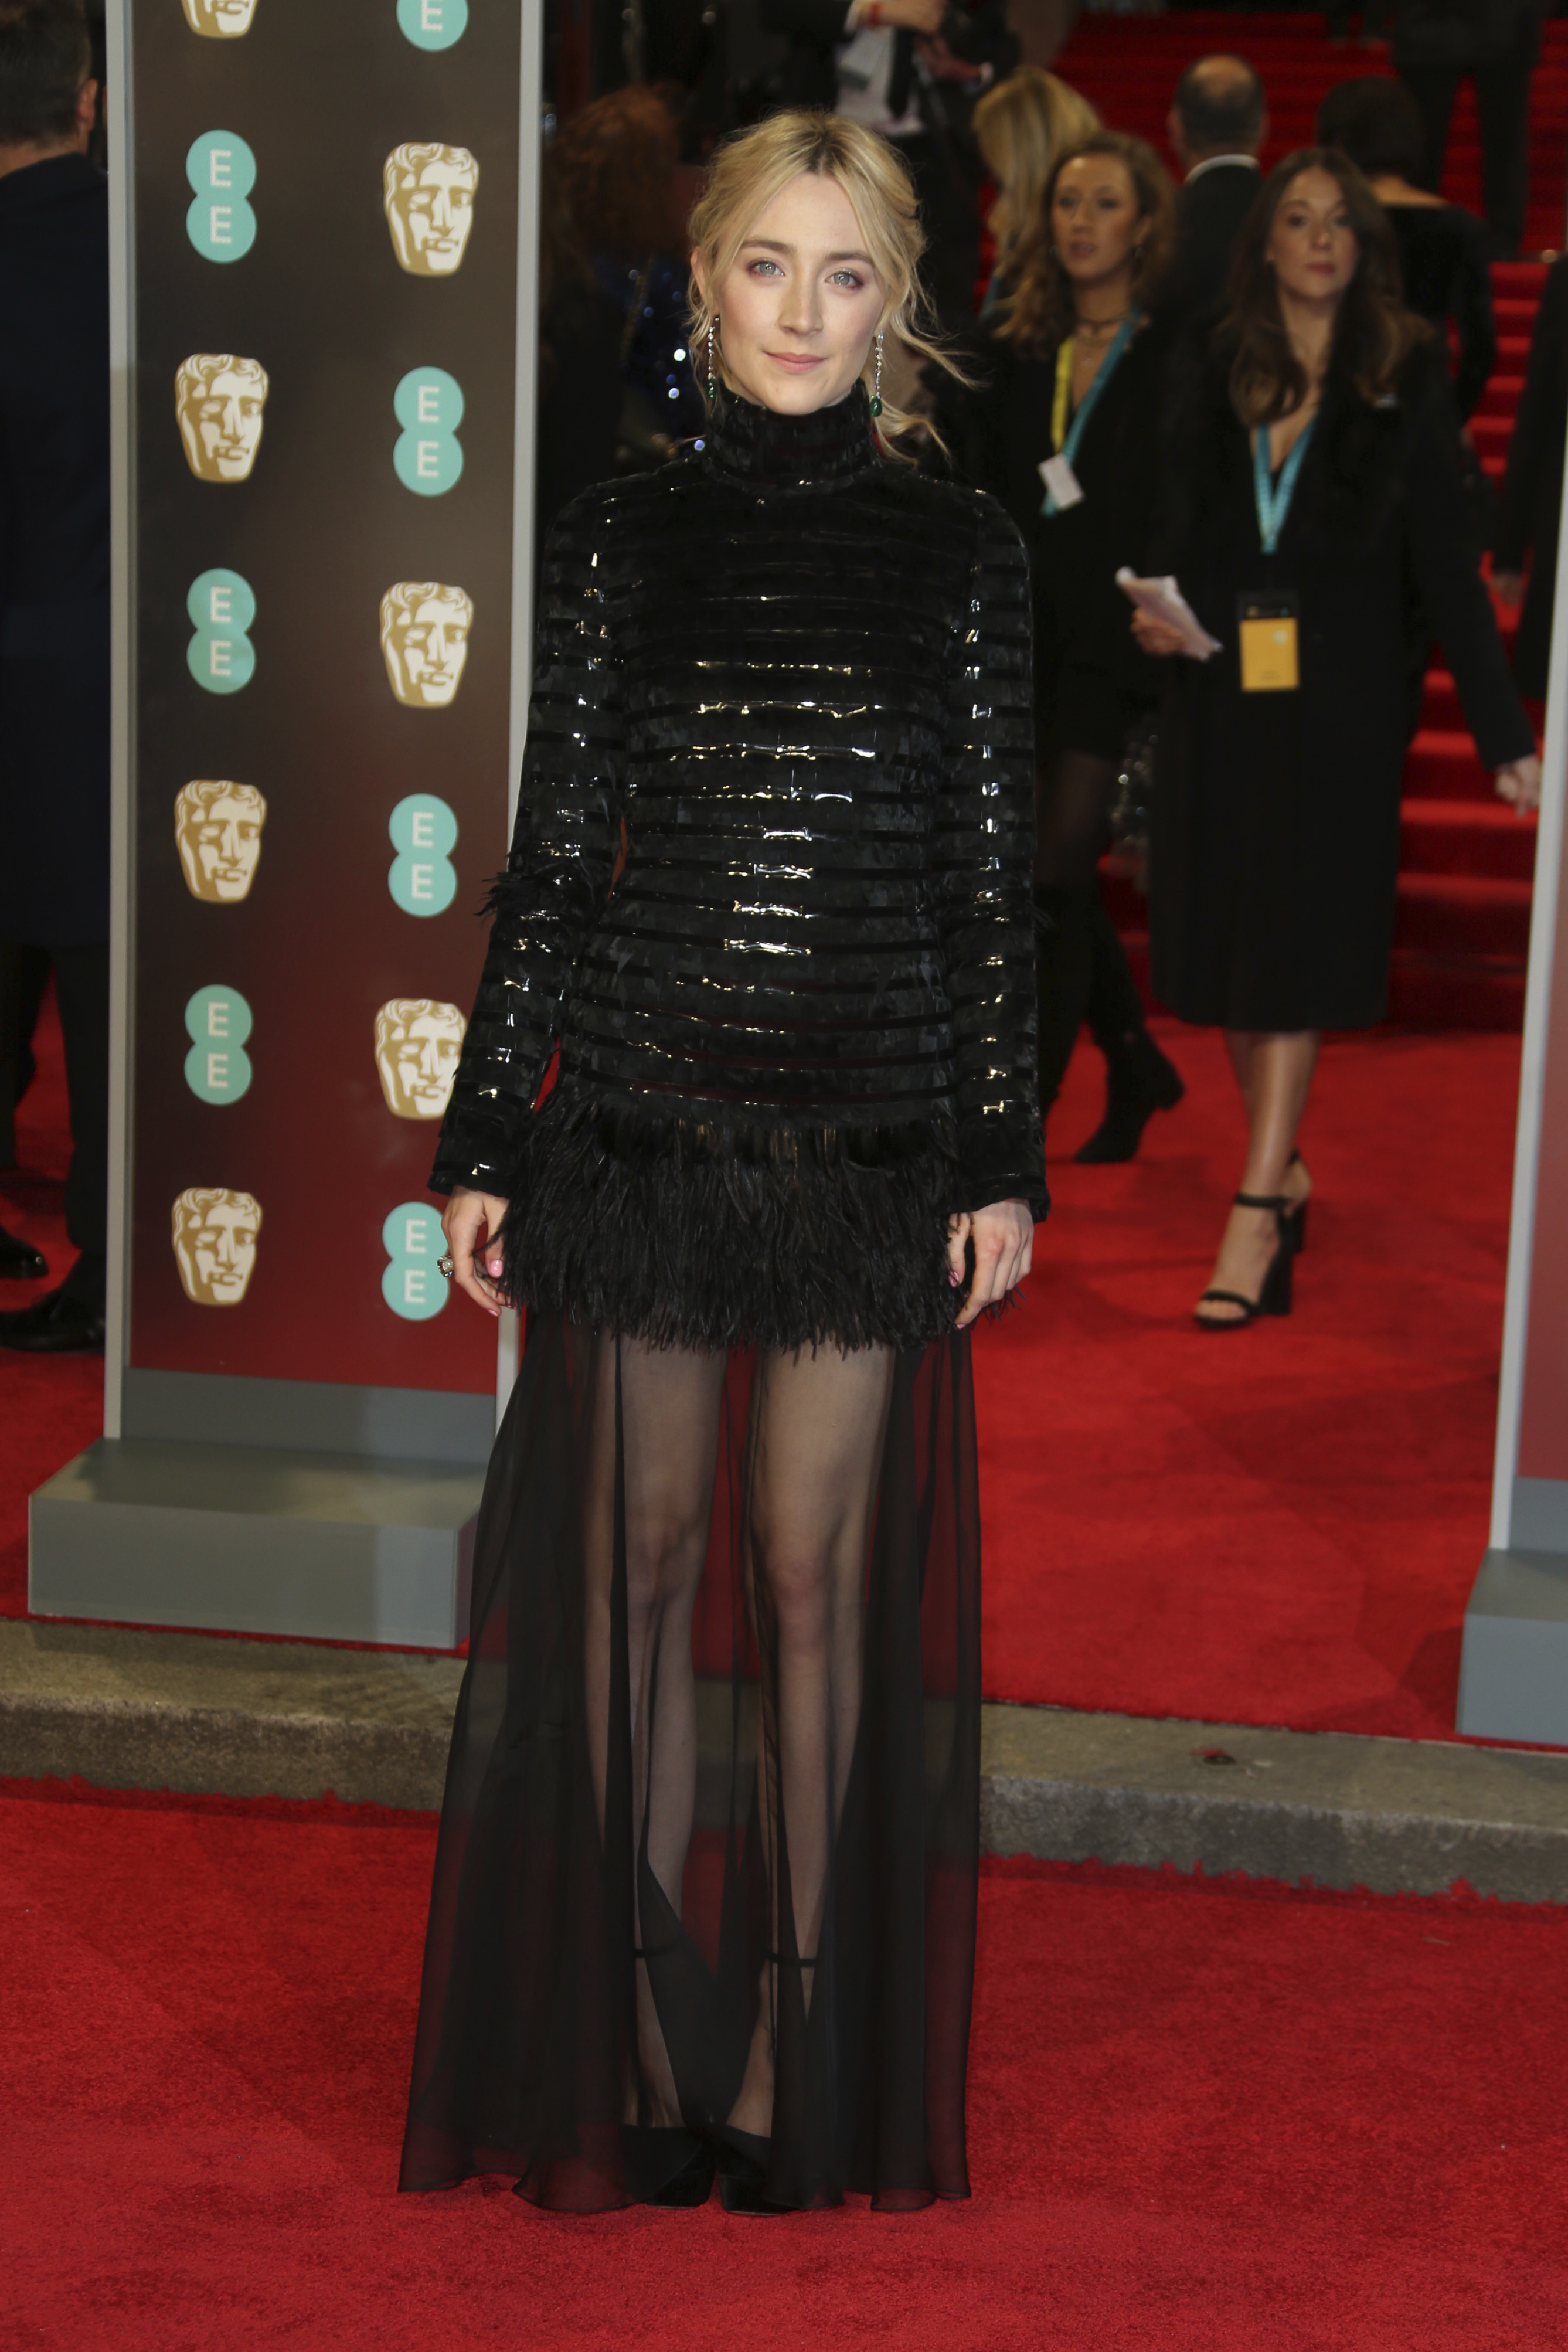 <div class='meta'><div class='origin-logo' data-origin='AP'></div><span class='caption-text' data-credit='Joel C Ryan/Invision/AP'>Actress Saoirse Ronan poses for photographers upon arrival at the BAFTA 2018 Awards in London, Sunday, Feb. 18, 2018.</span></div>